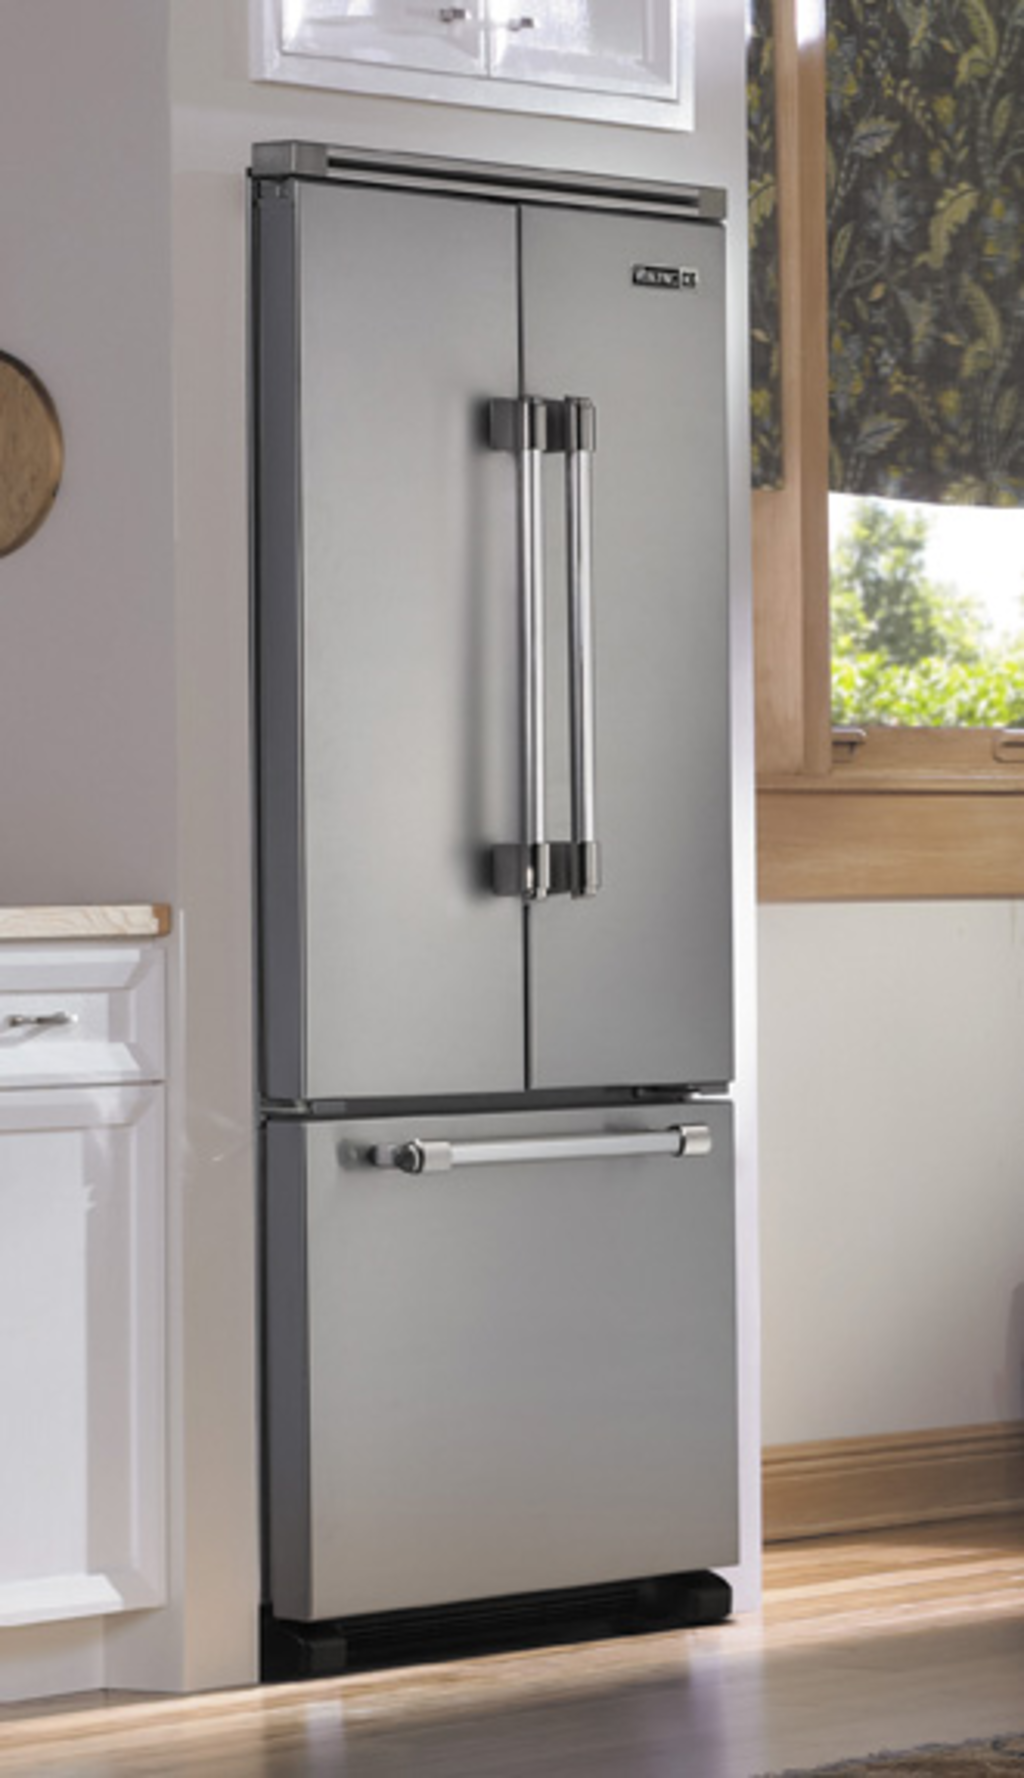 Absolute Appliance Care - Frigidaire Refrigerator Repair